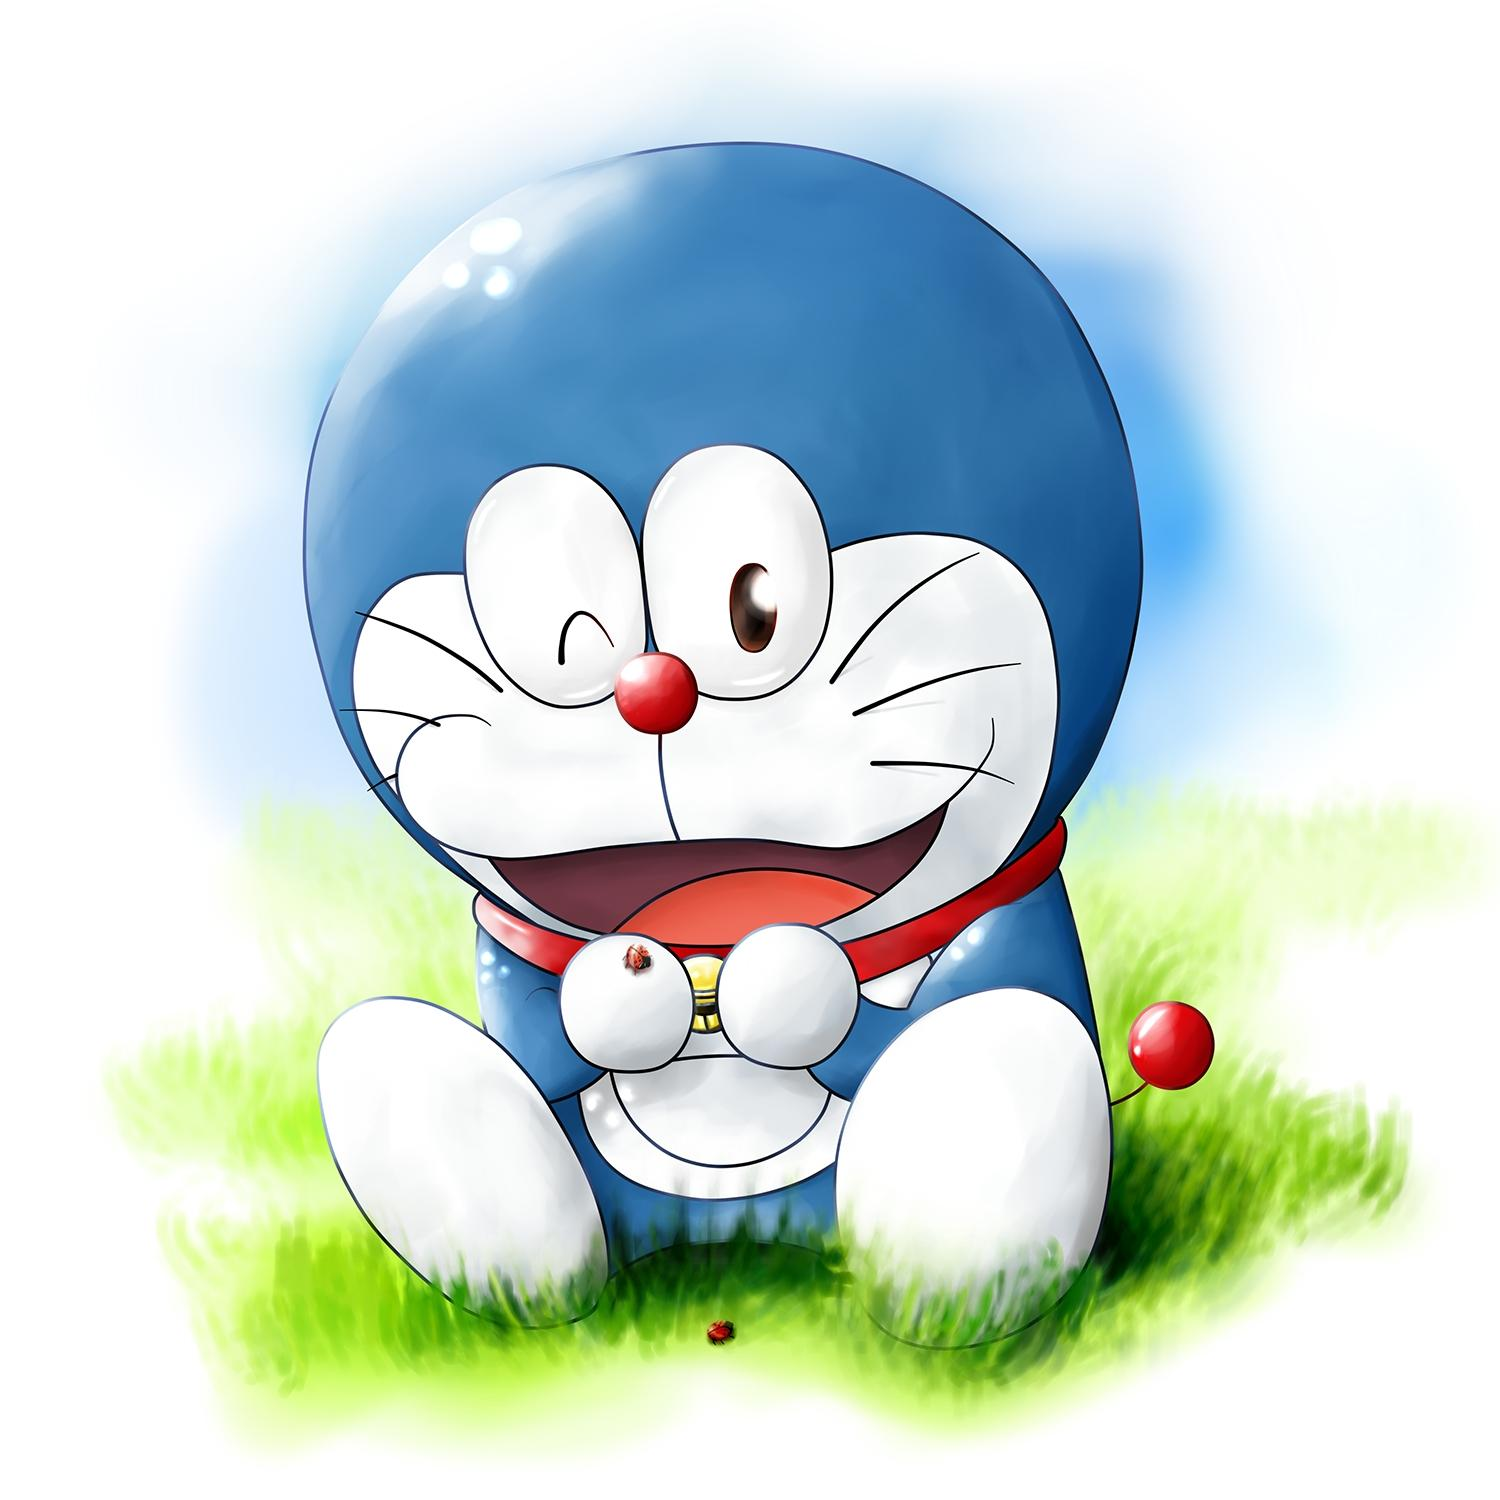 Doraemon Wallpaper For Desktop Doraemon Hd HD